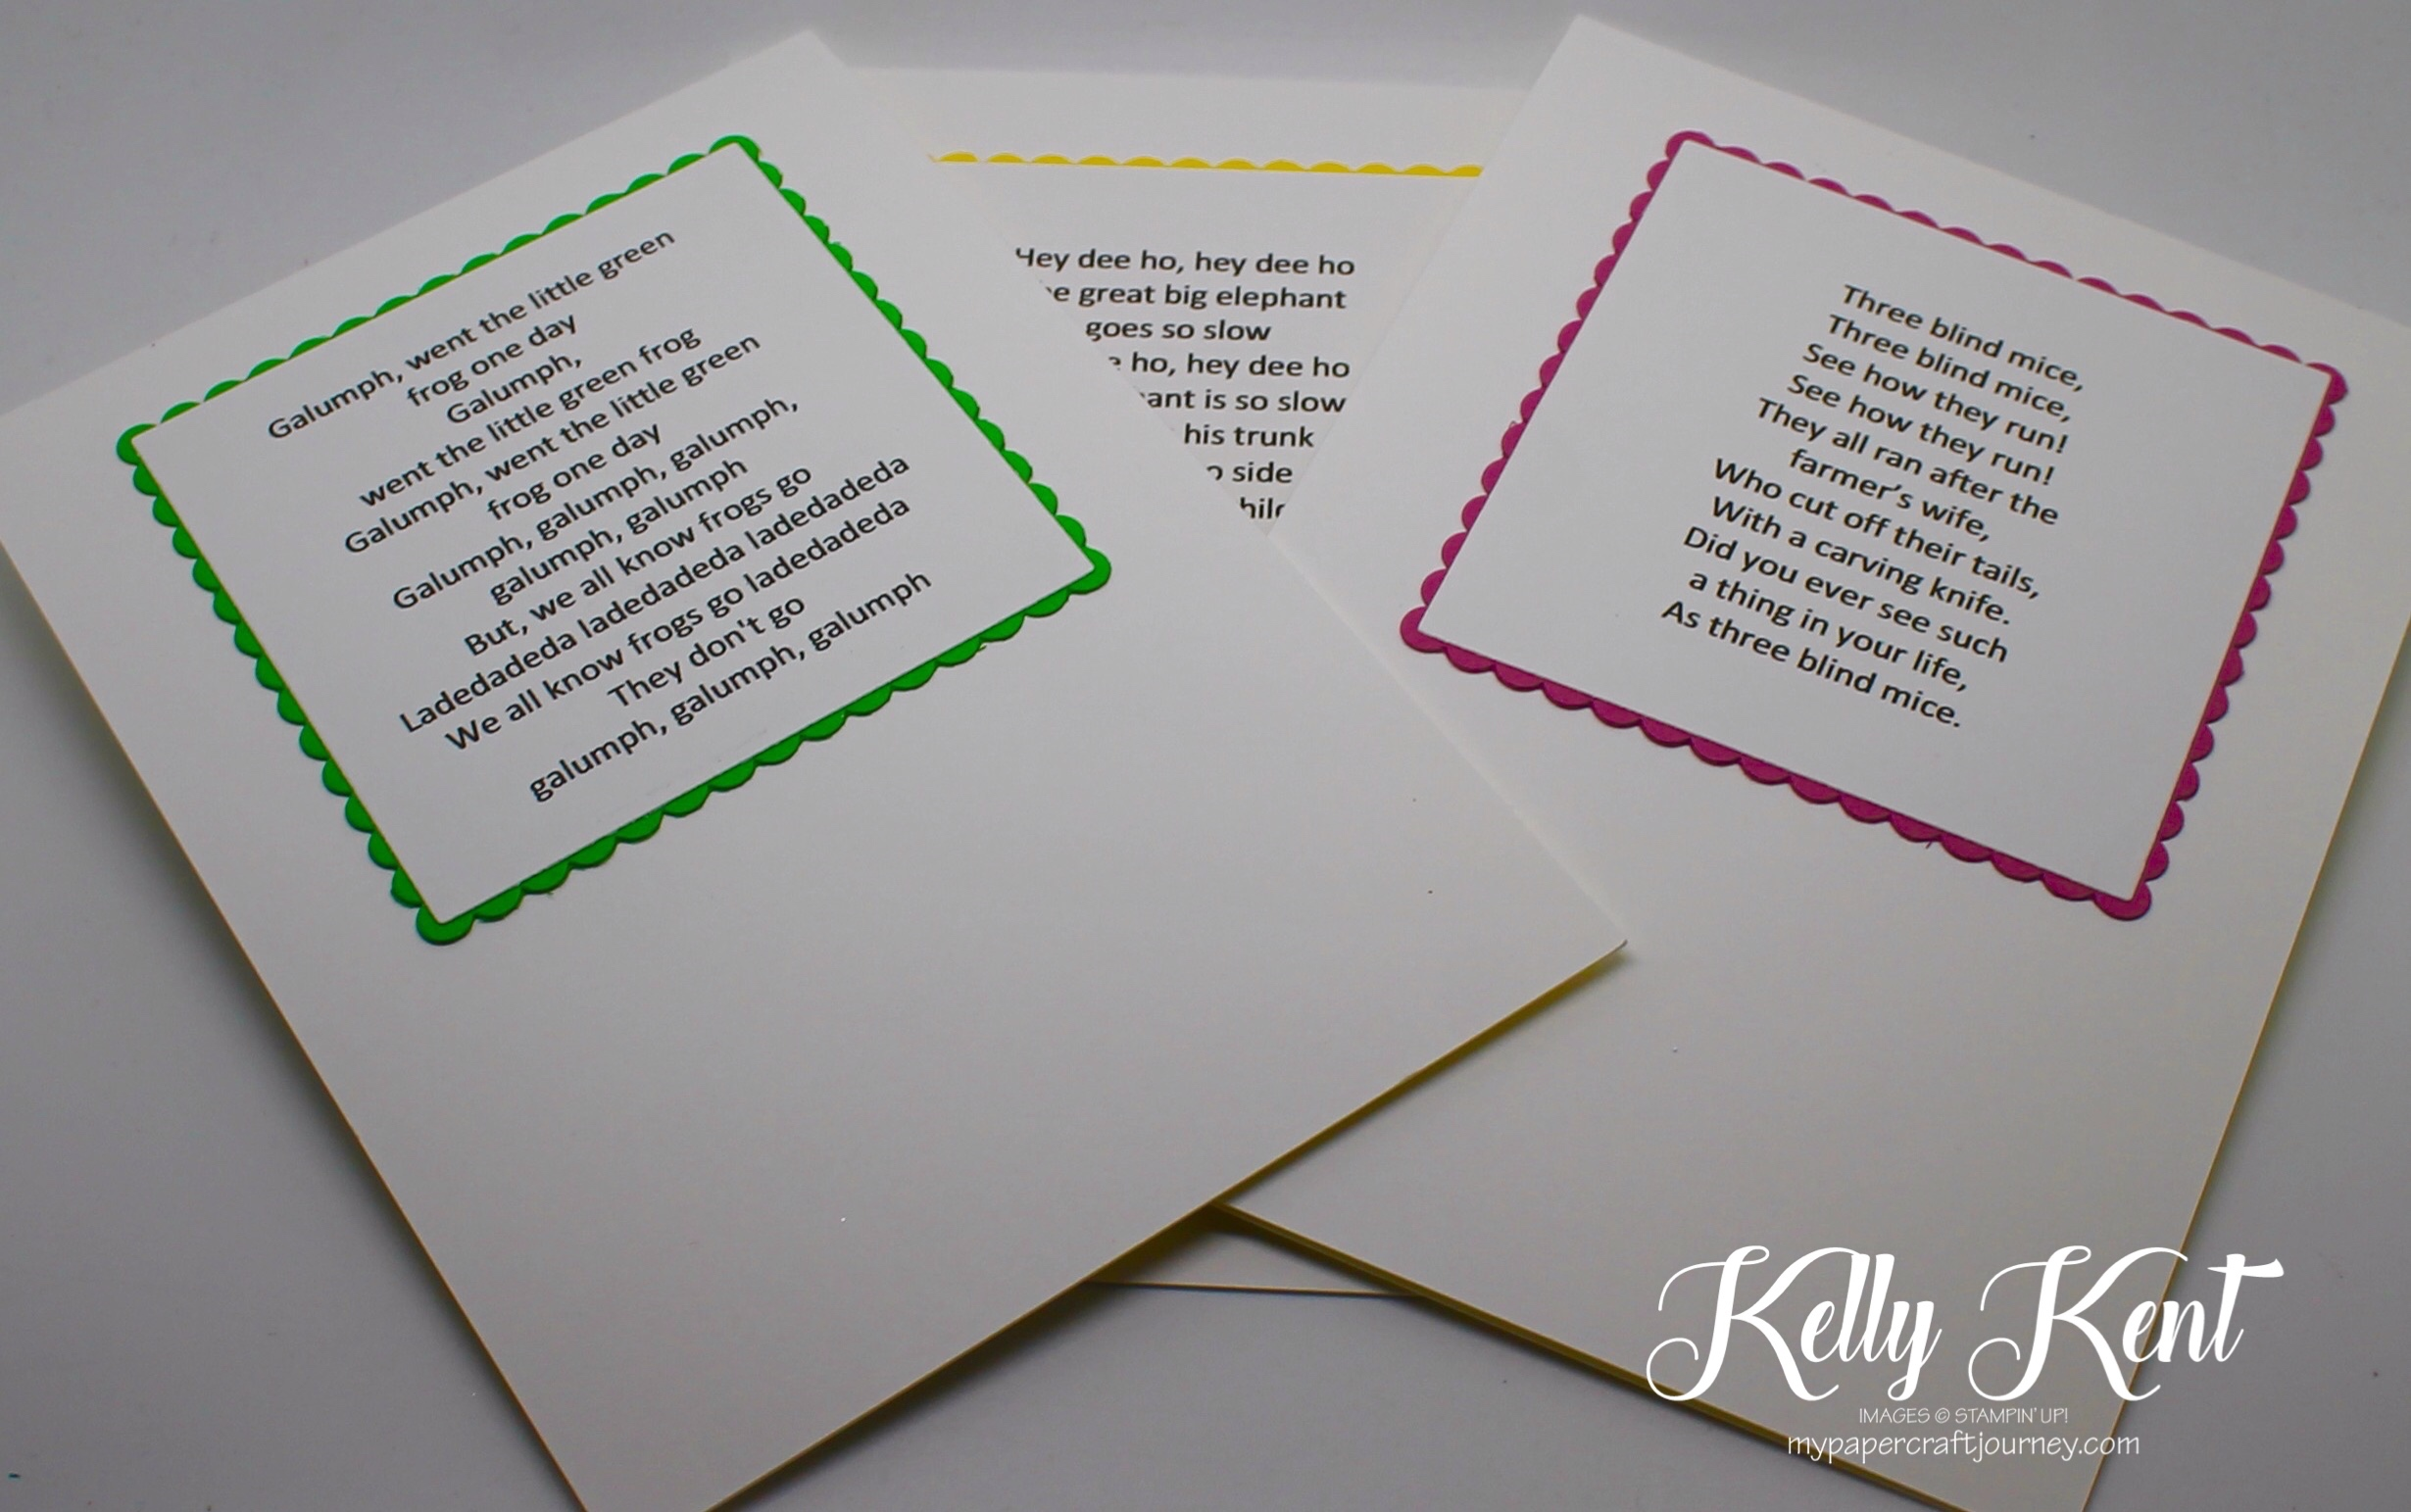 Stamp Review Crew - Love You Lots Host stamp set. Nursery Rhyme Set. Kelly Kent - mypapercraftjourney.com